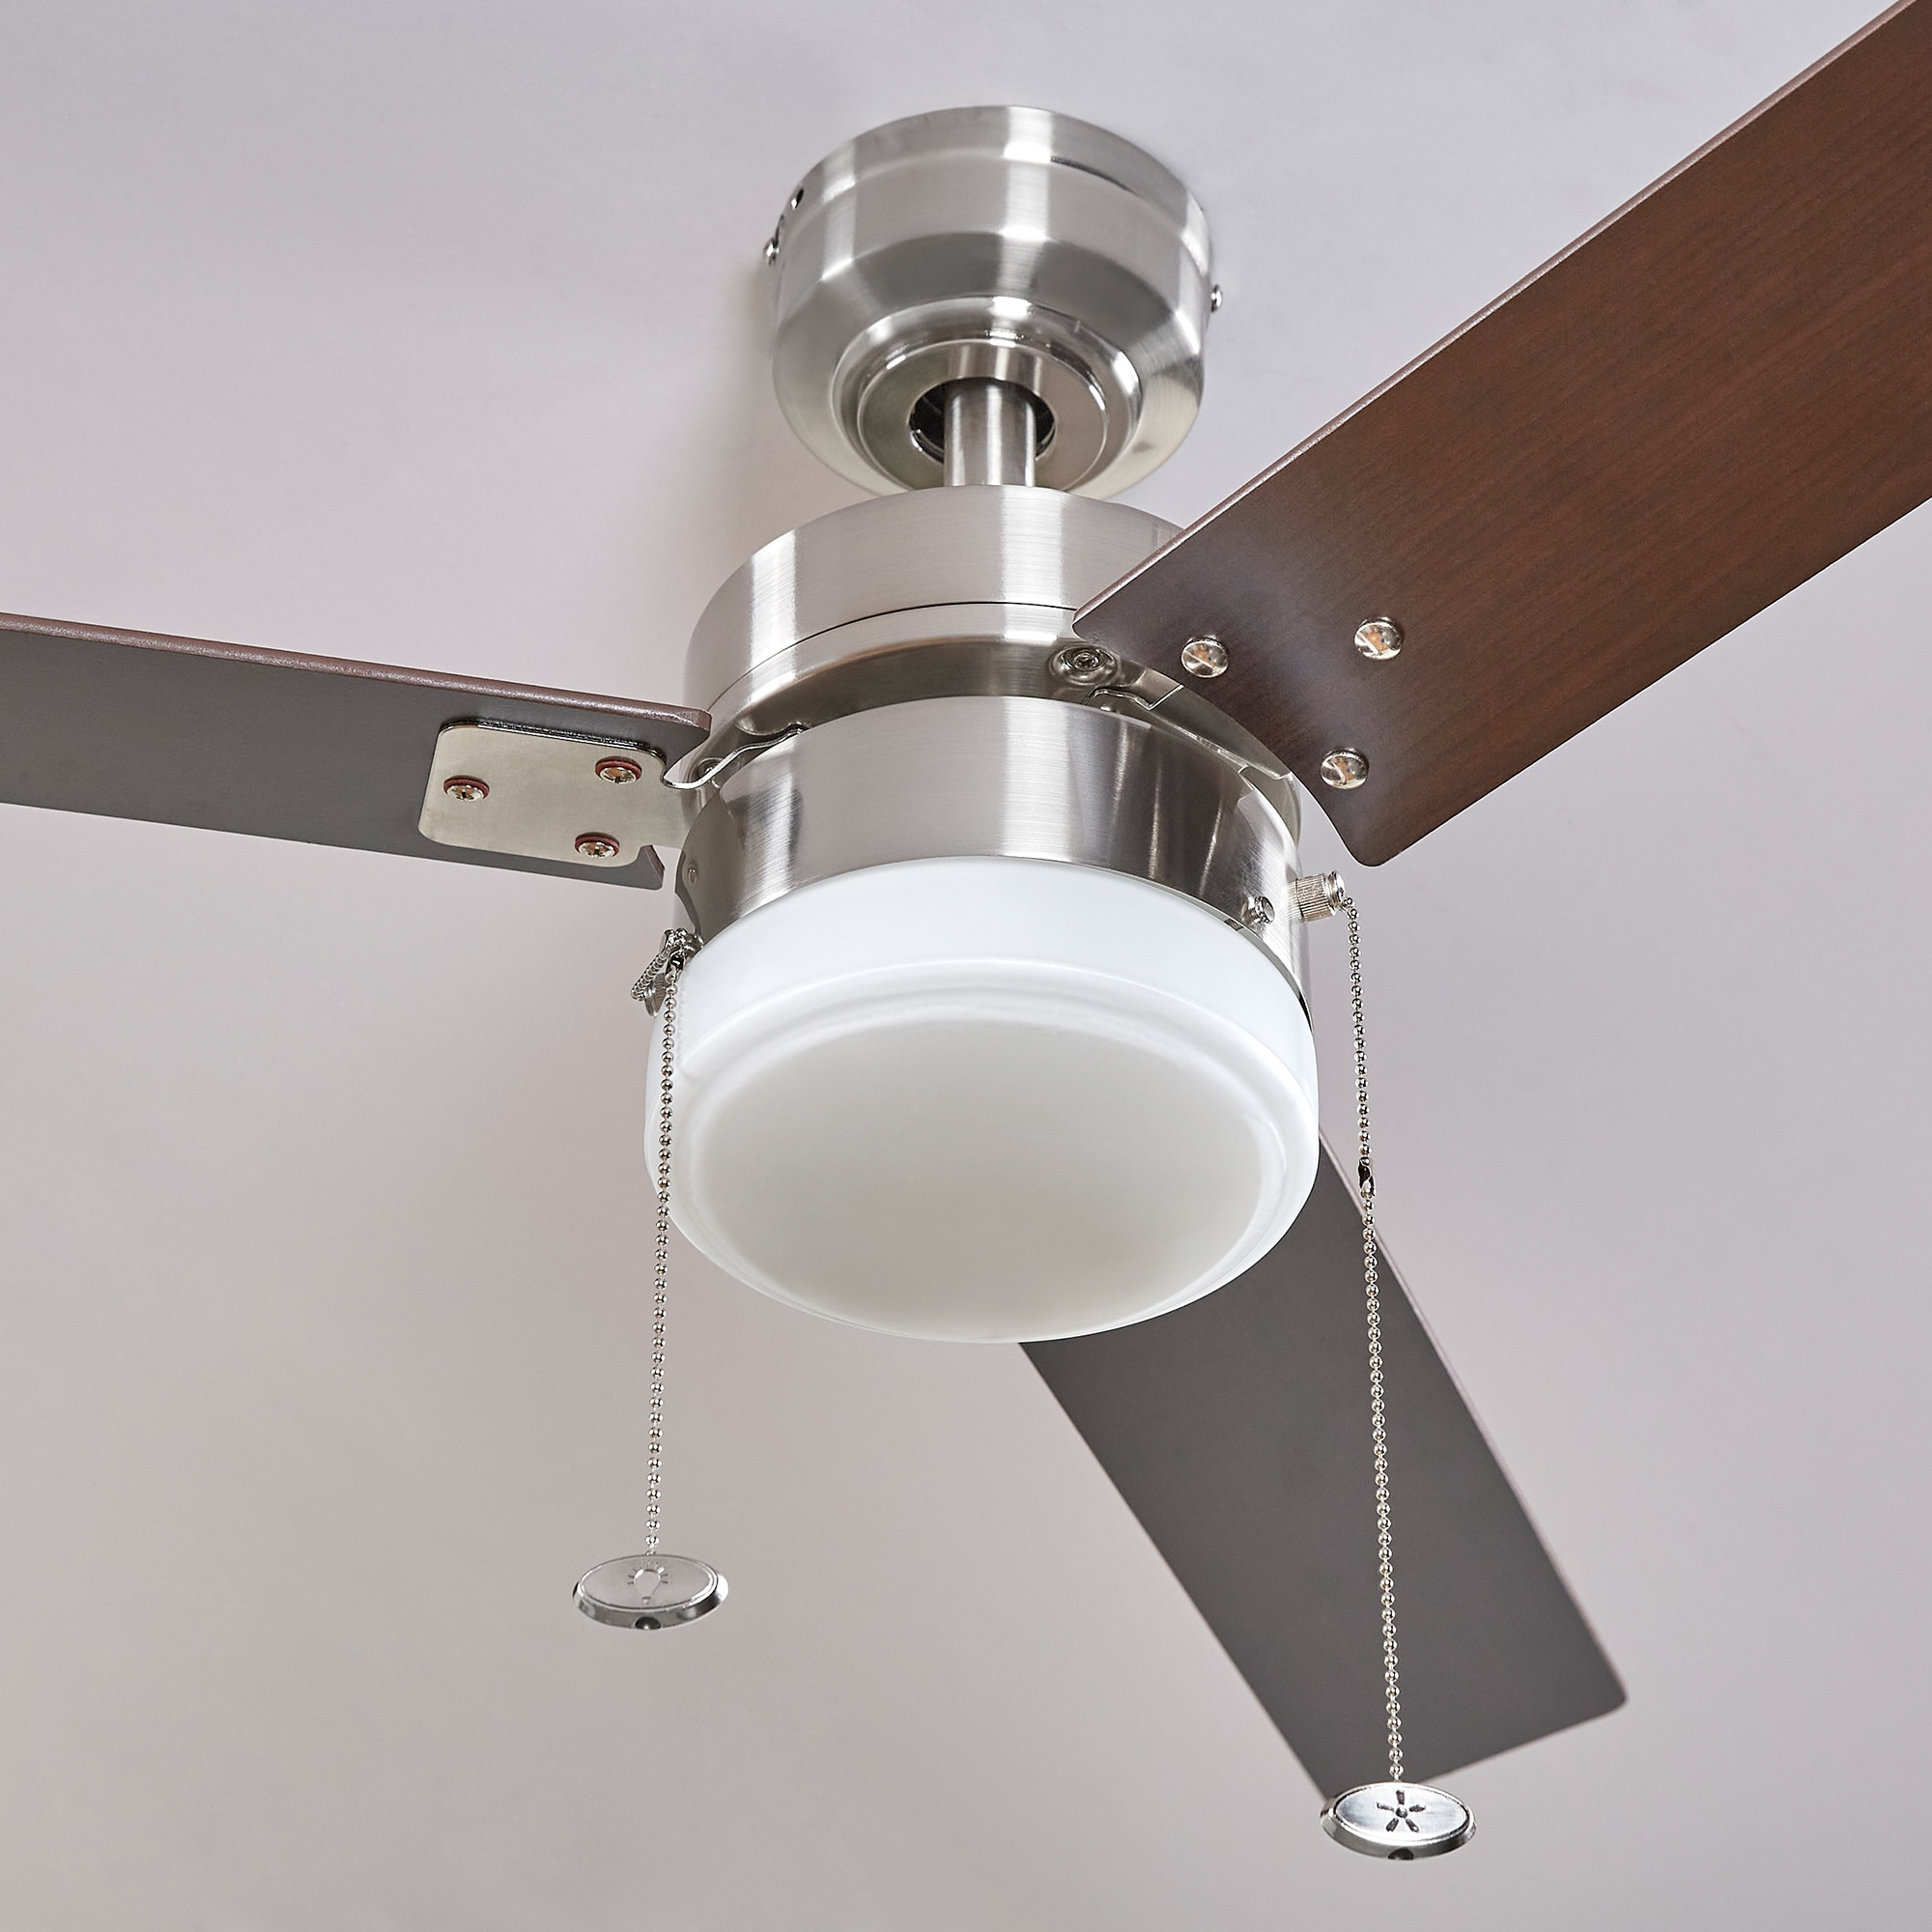 Harbor Breeze Vue 44 In Nickel Led Ceiling Fan 3 Blade In The Ceiling Fans Department At Lowes Com